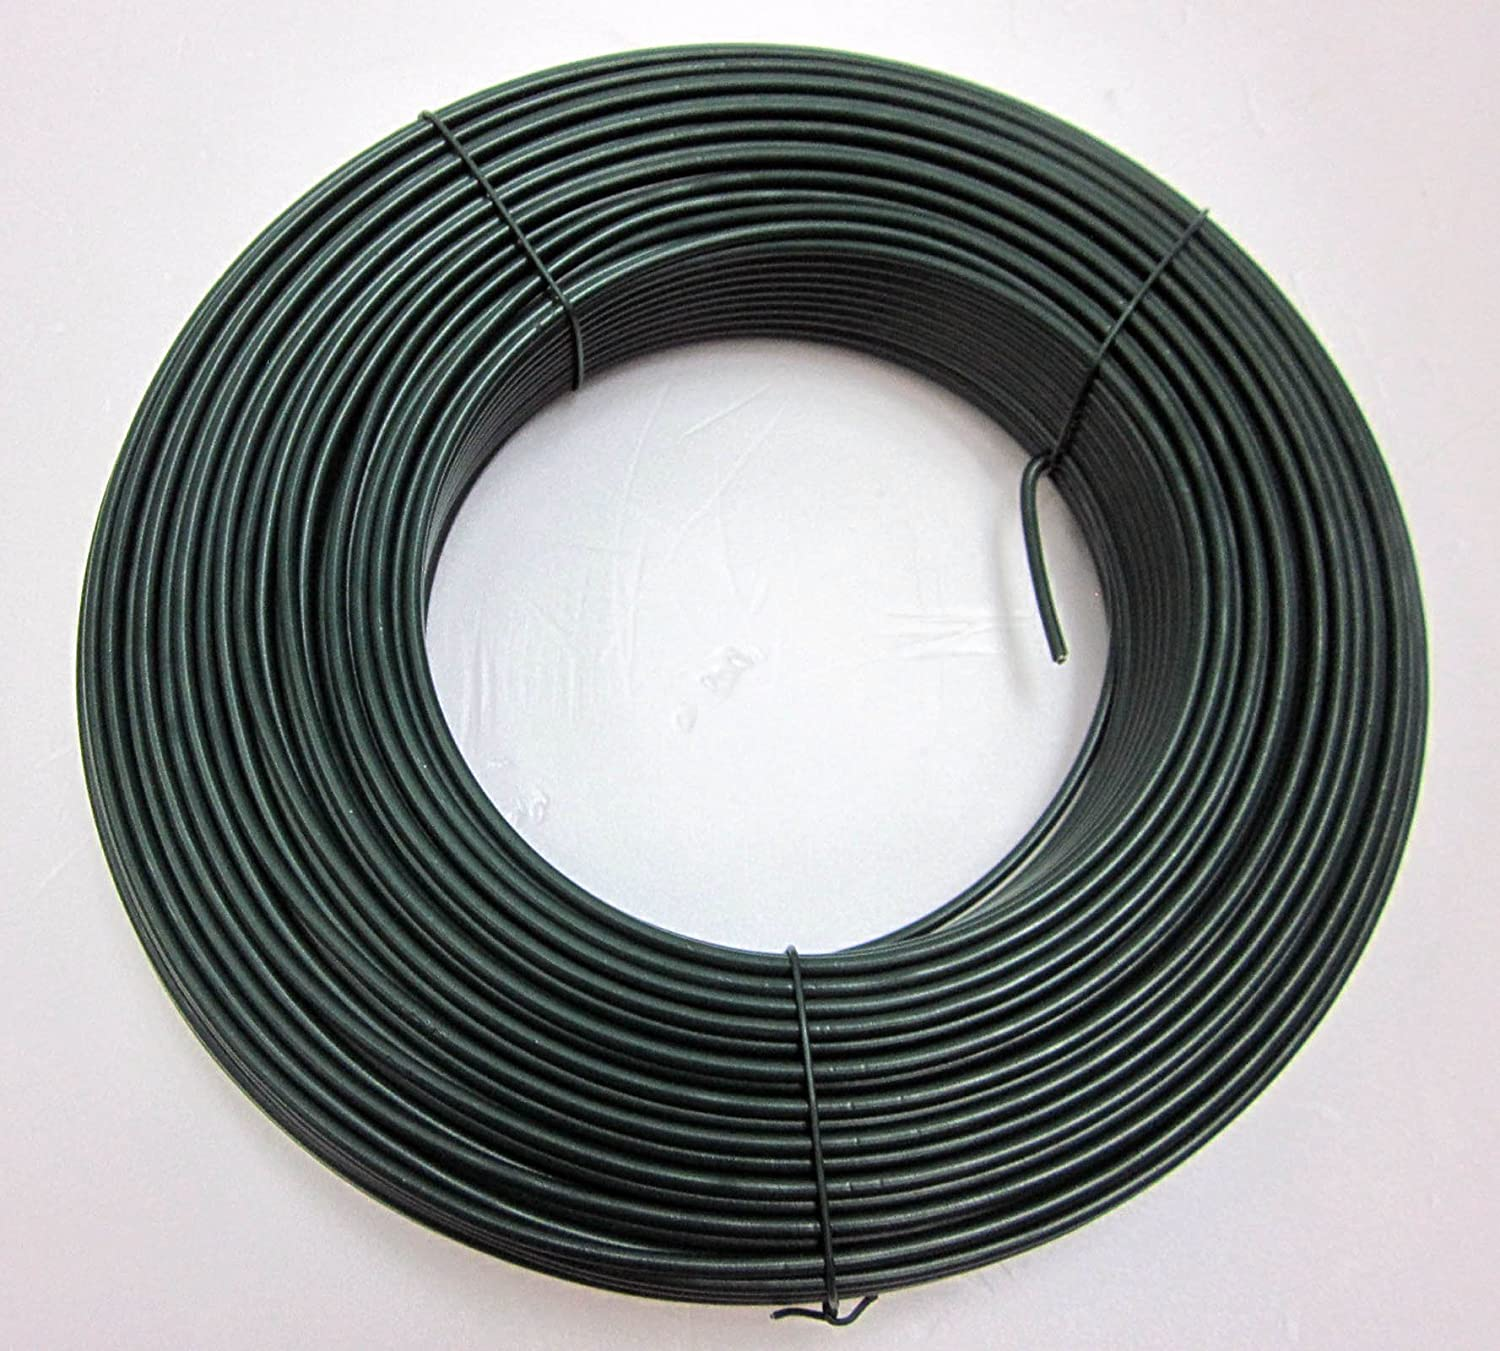 PVC Coated Tension Line Wire 100m x 31mm for Fencing 1 Amazon